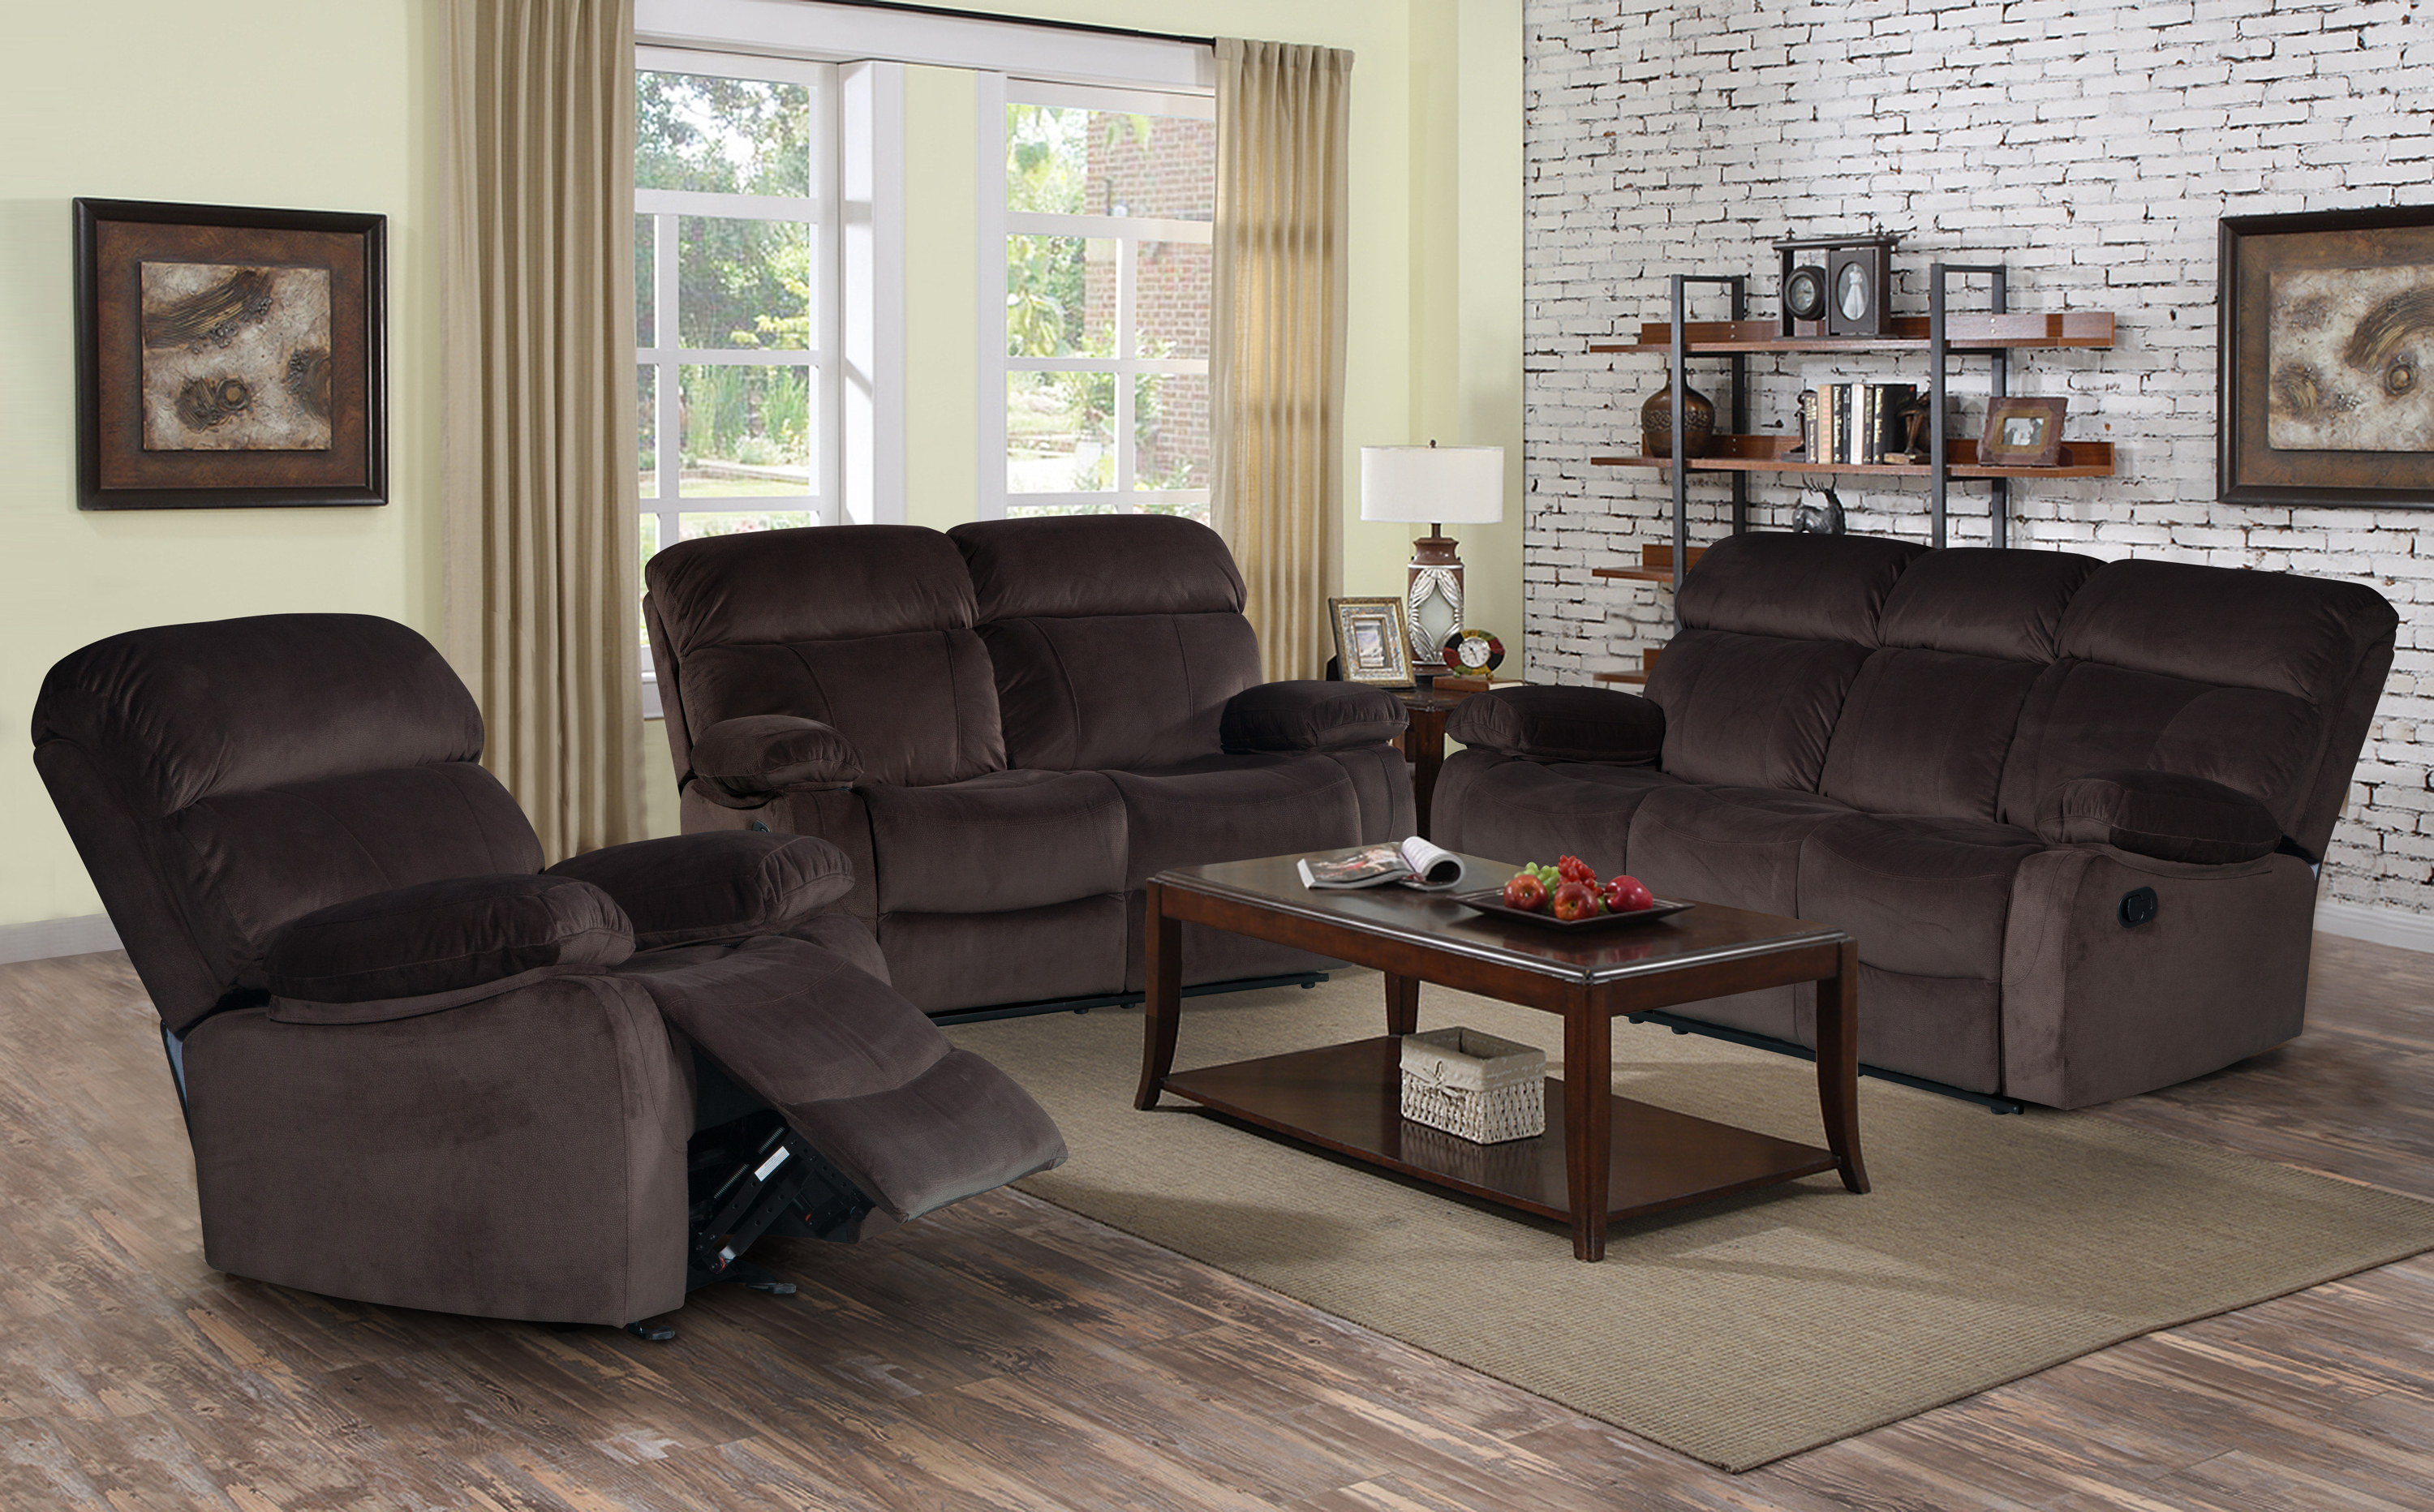 Awesome Izabella Dark Chocolate Corduroy 3 Pc Reclining Sofa Set With Rocking  Recliner Chair